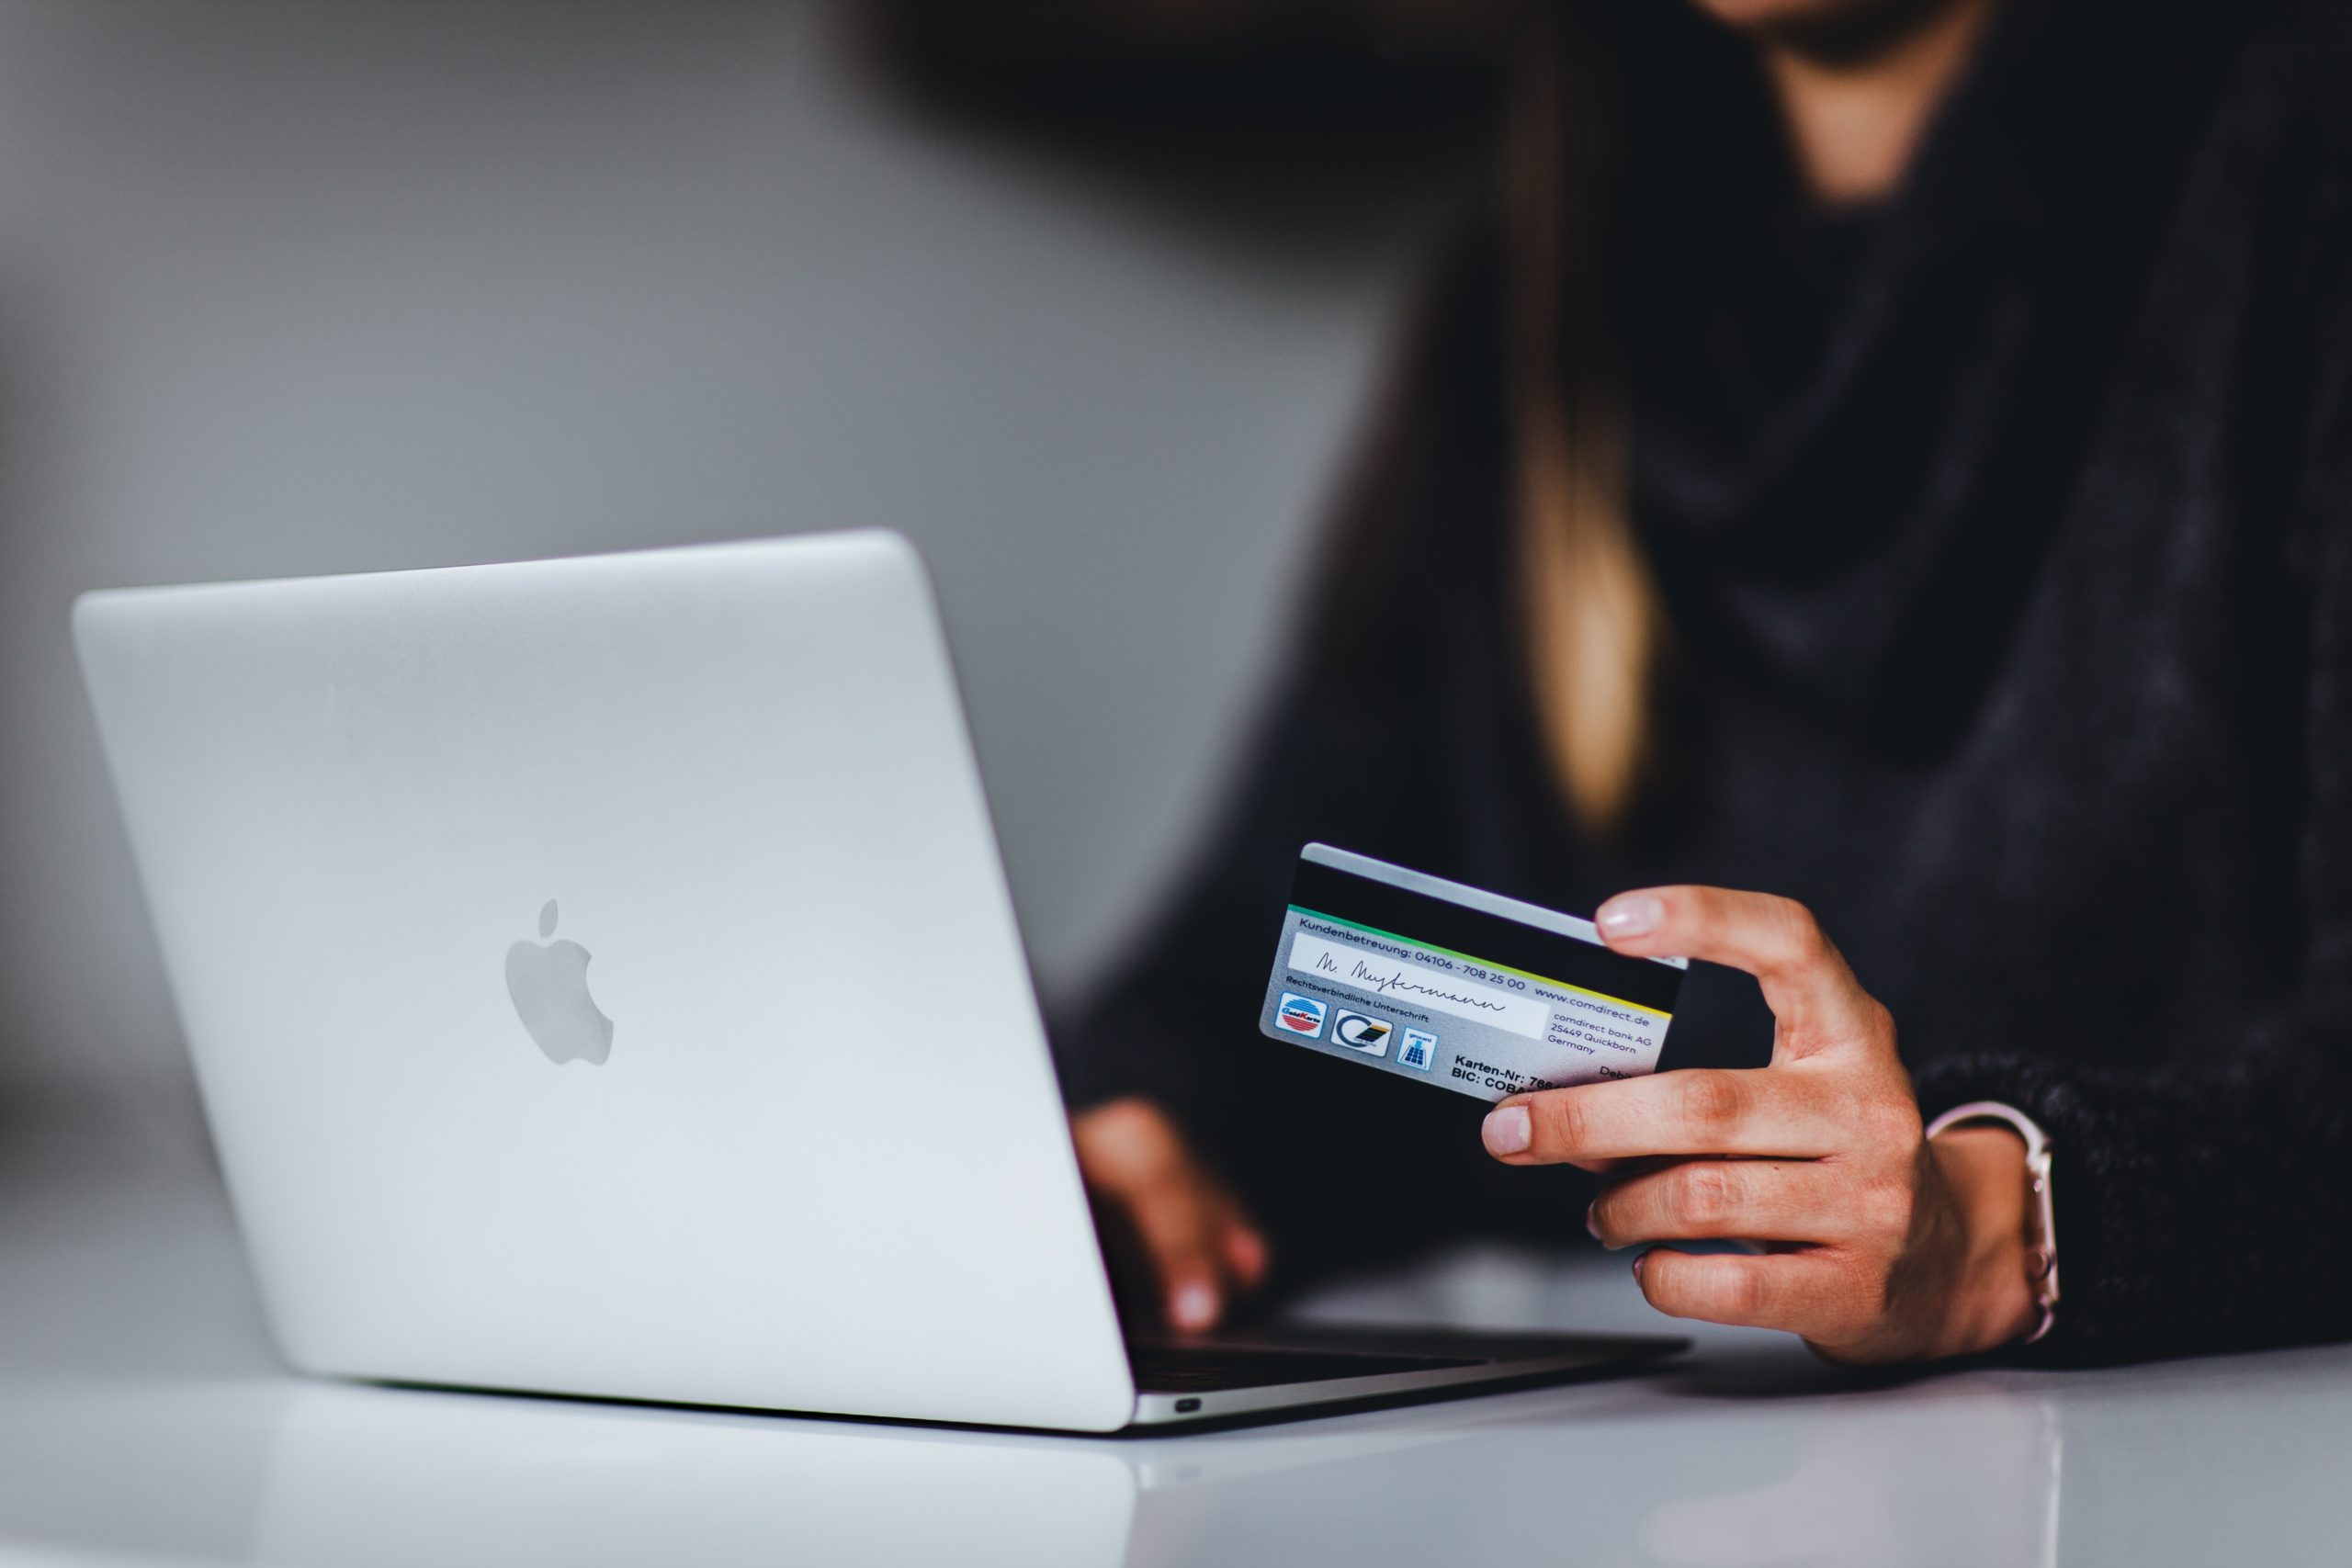 Person in front of laptop holding a credit card